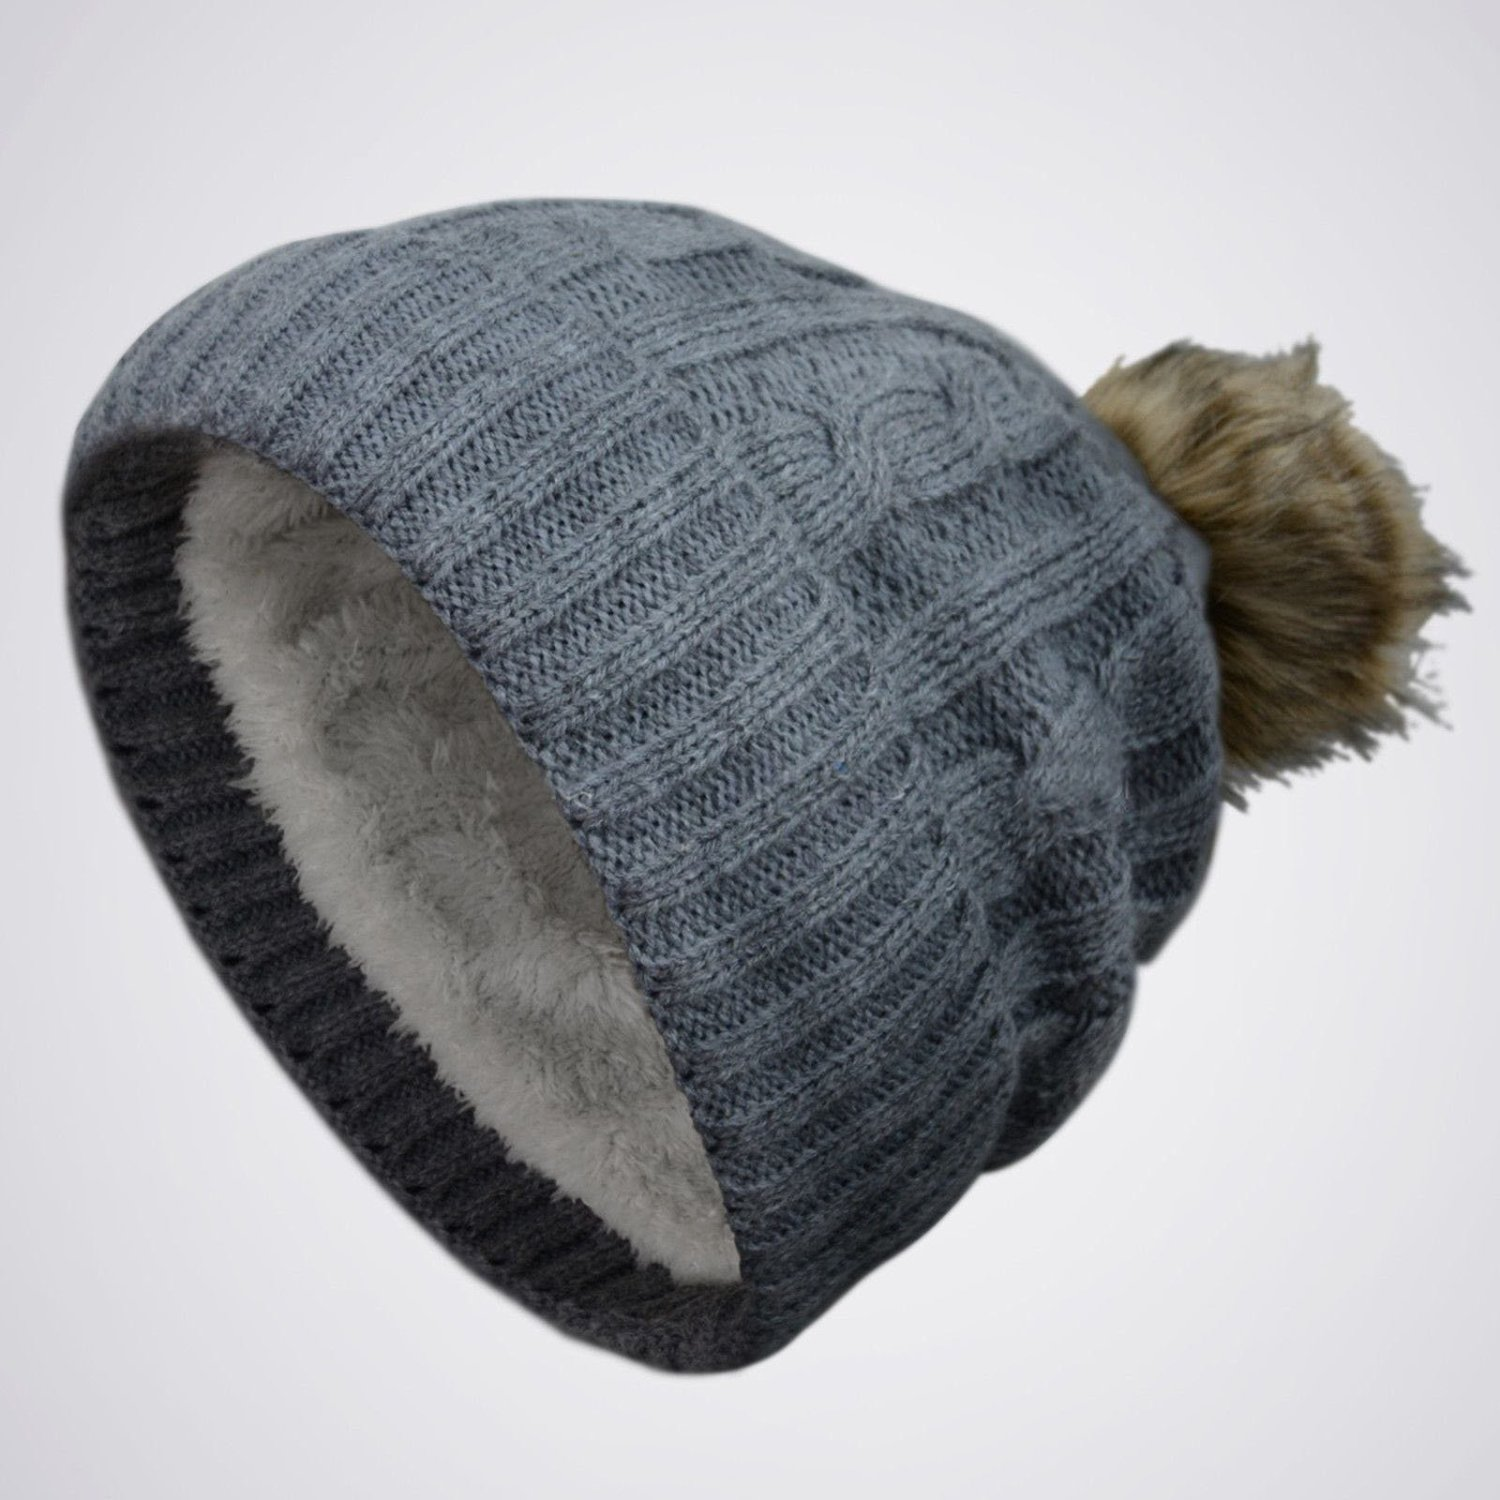 Buy GREY Thick POM-POM Knit Slouchy Baggy Beanie Oversize Winter Hat Ski  Cap Skull Womens in Cheap Price on m.alibaba.com 29c58c56730